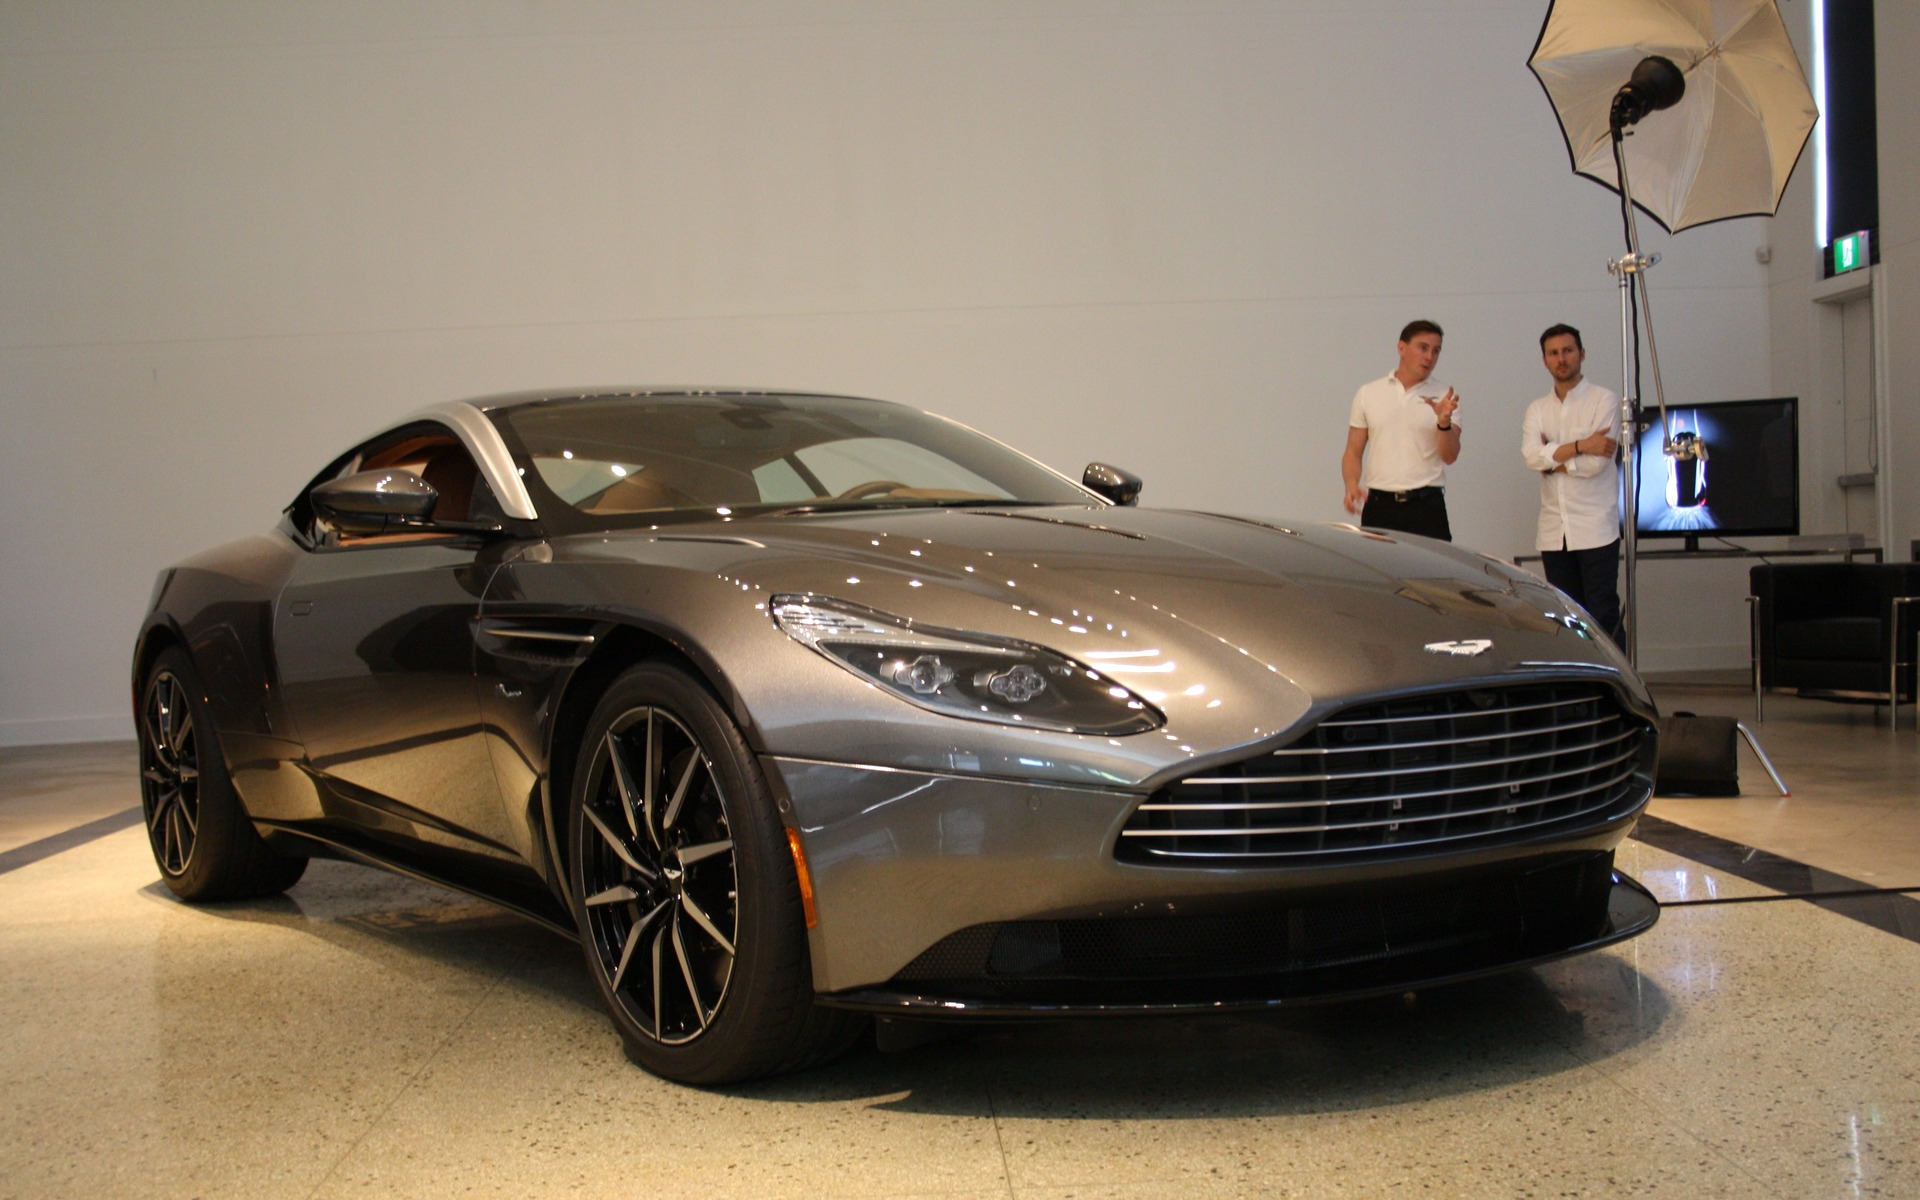 2017 aston martin db11 the next chapter the car guide. Black Bedroom Furniture Sets. Home Design Ideas